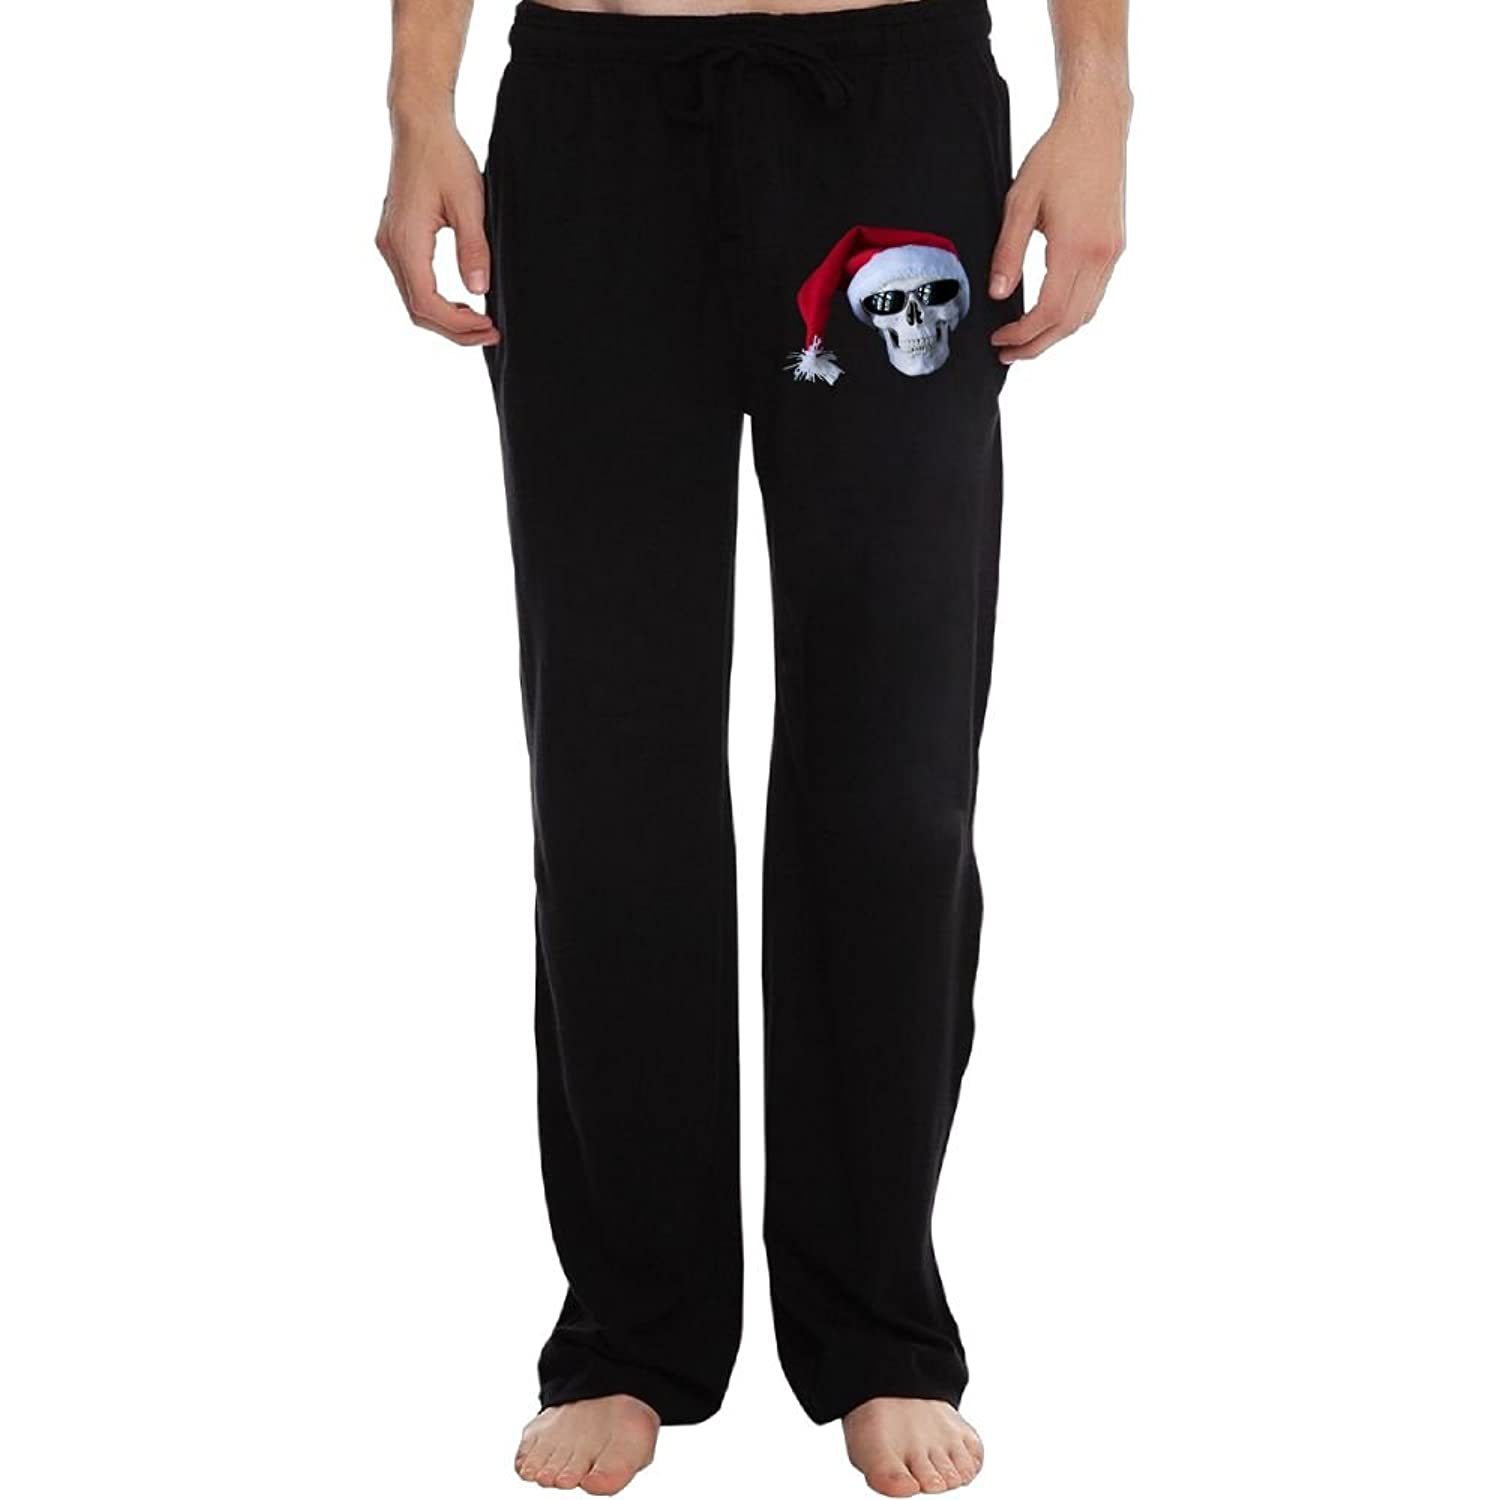 Discount Cindly Skull With Glasses And Christmas Hat Men's Sweatpants With Pockets Cotton Pant